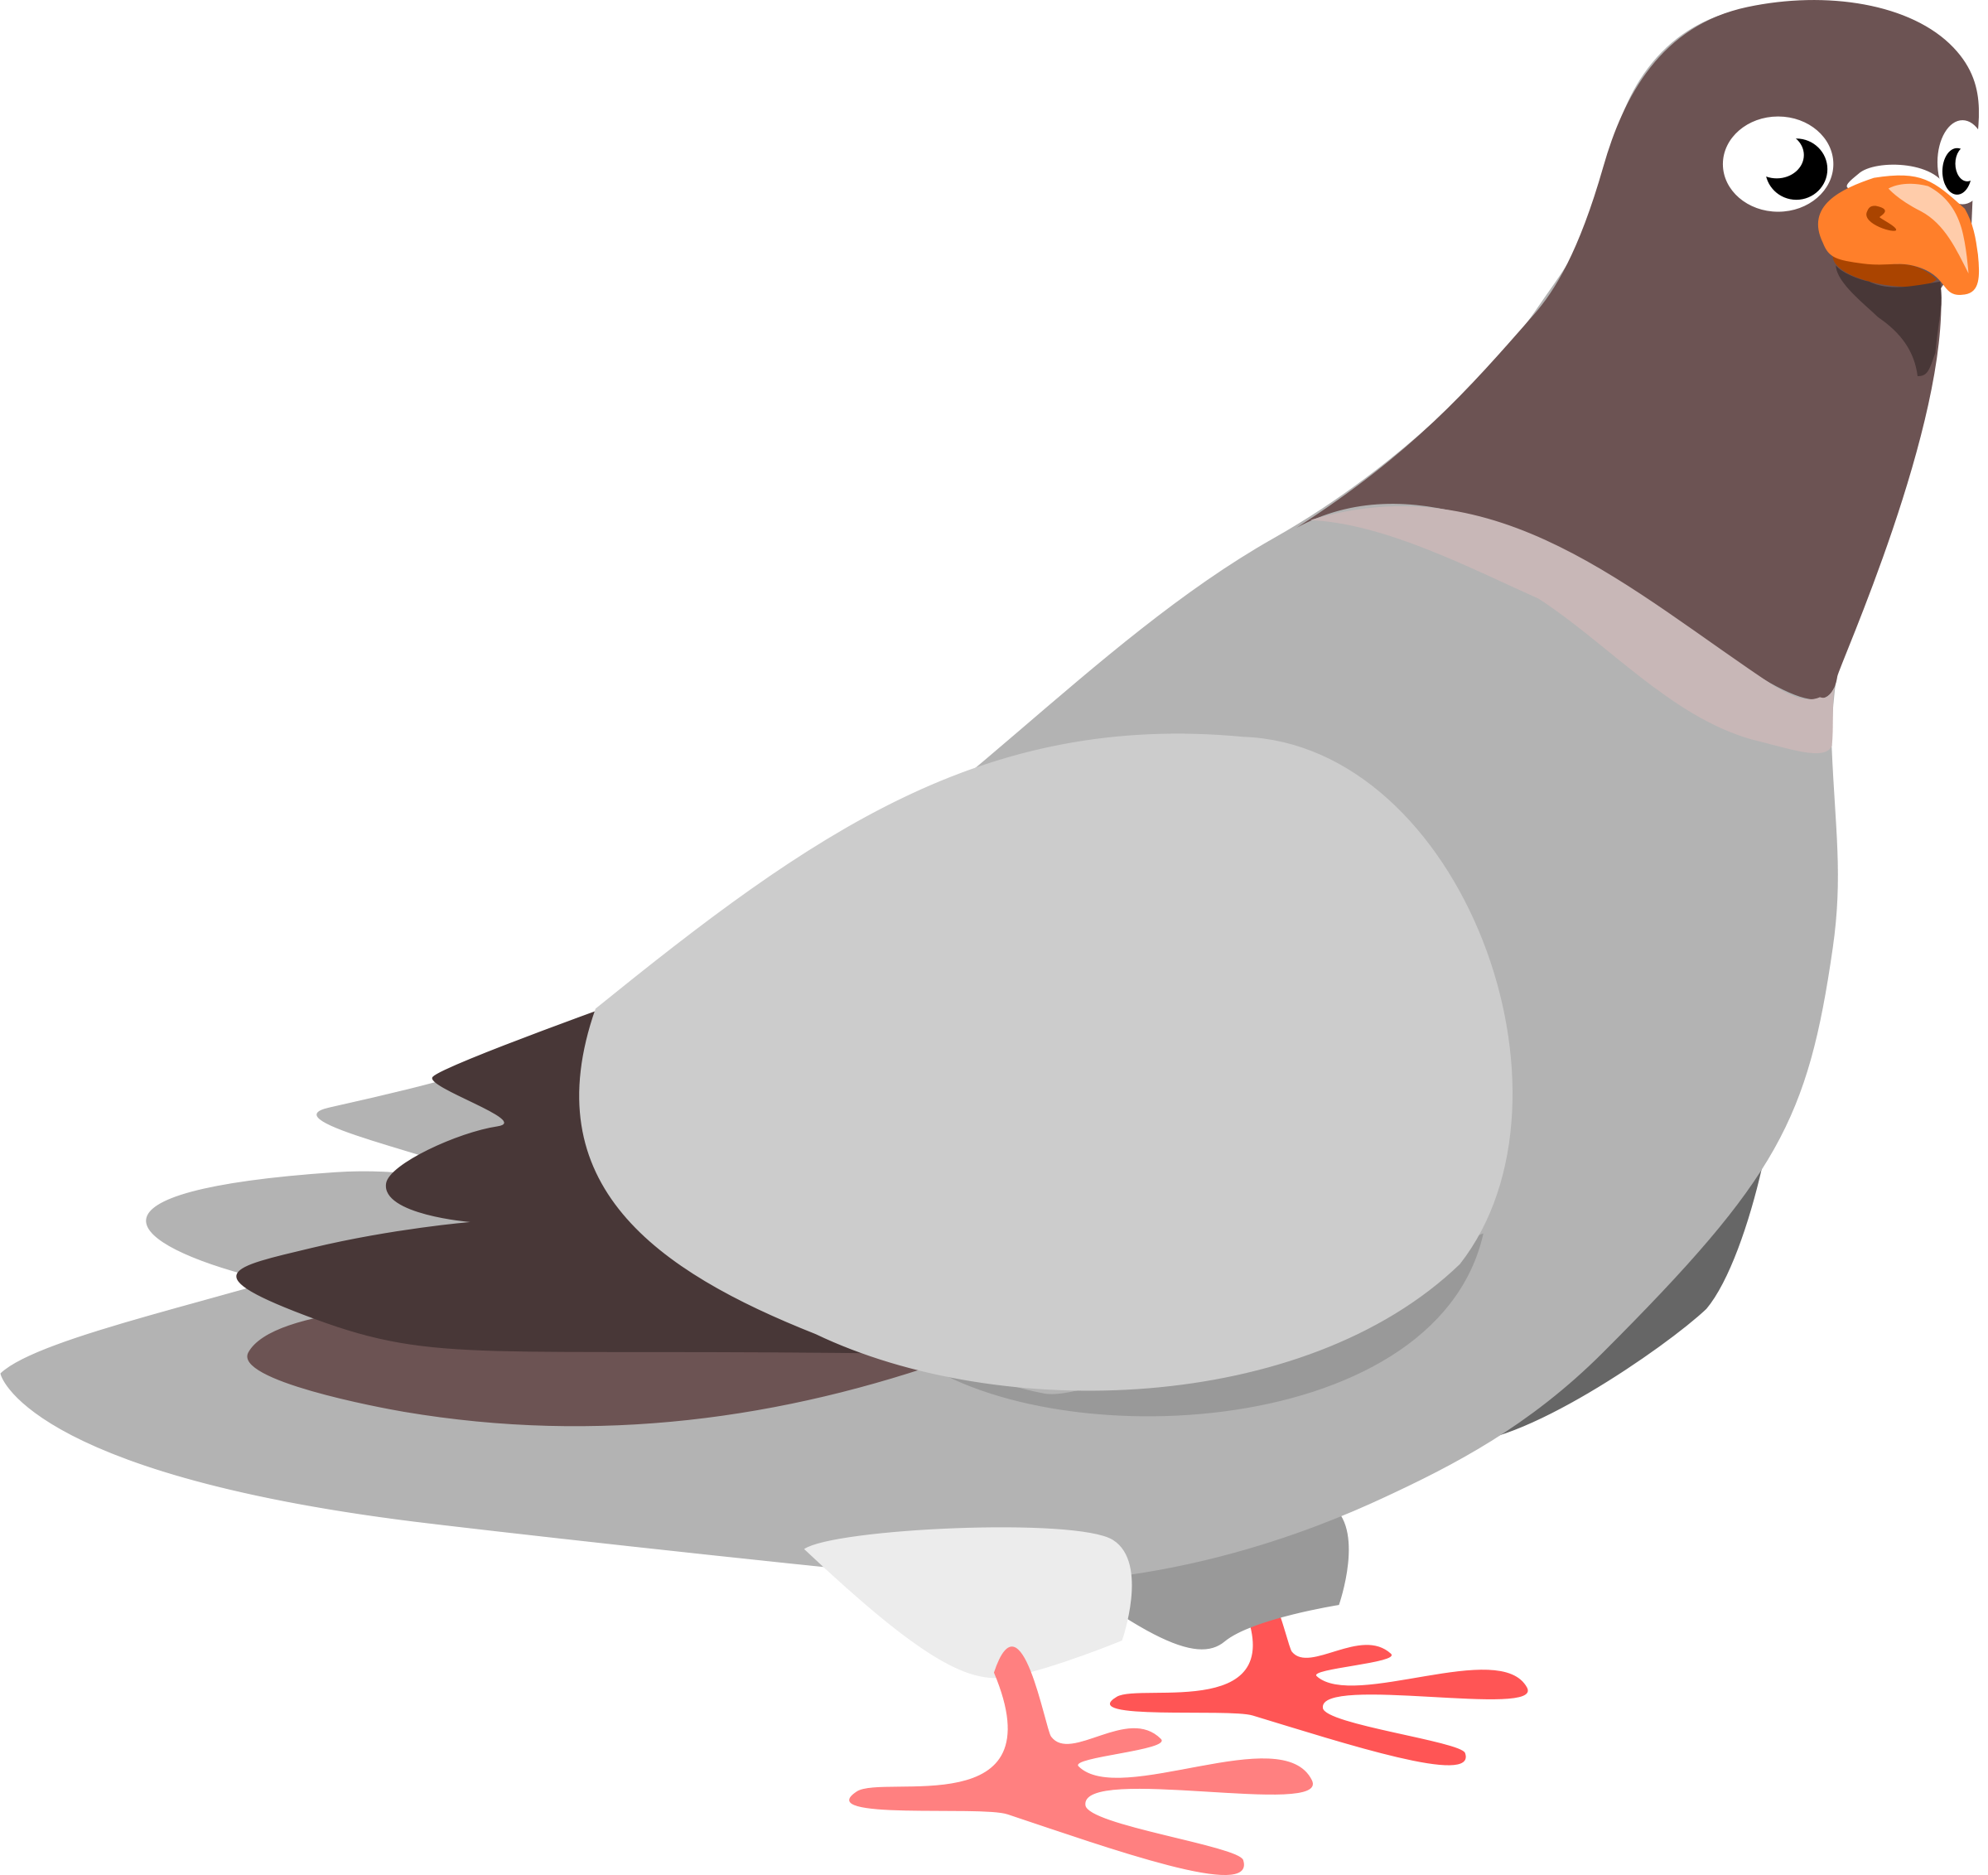 Pigeon Clip Art Free | Clipart Panda - Free Clipart Images